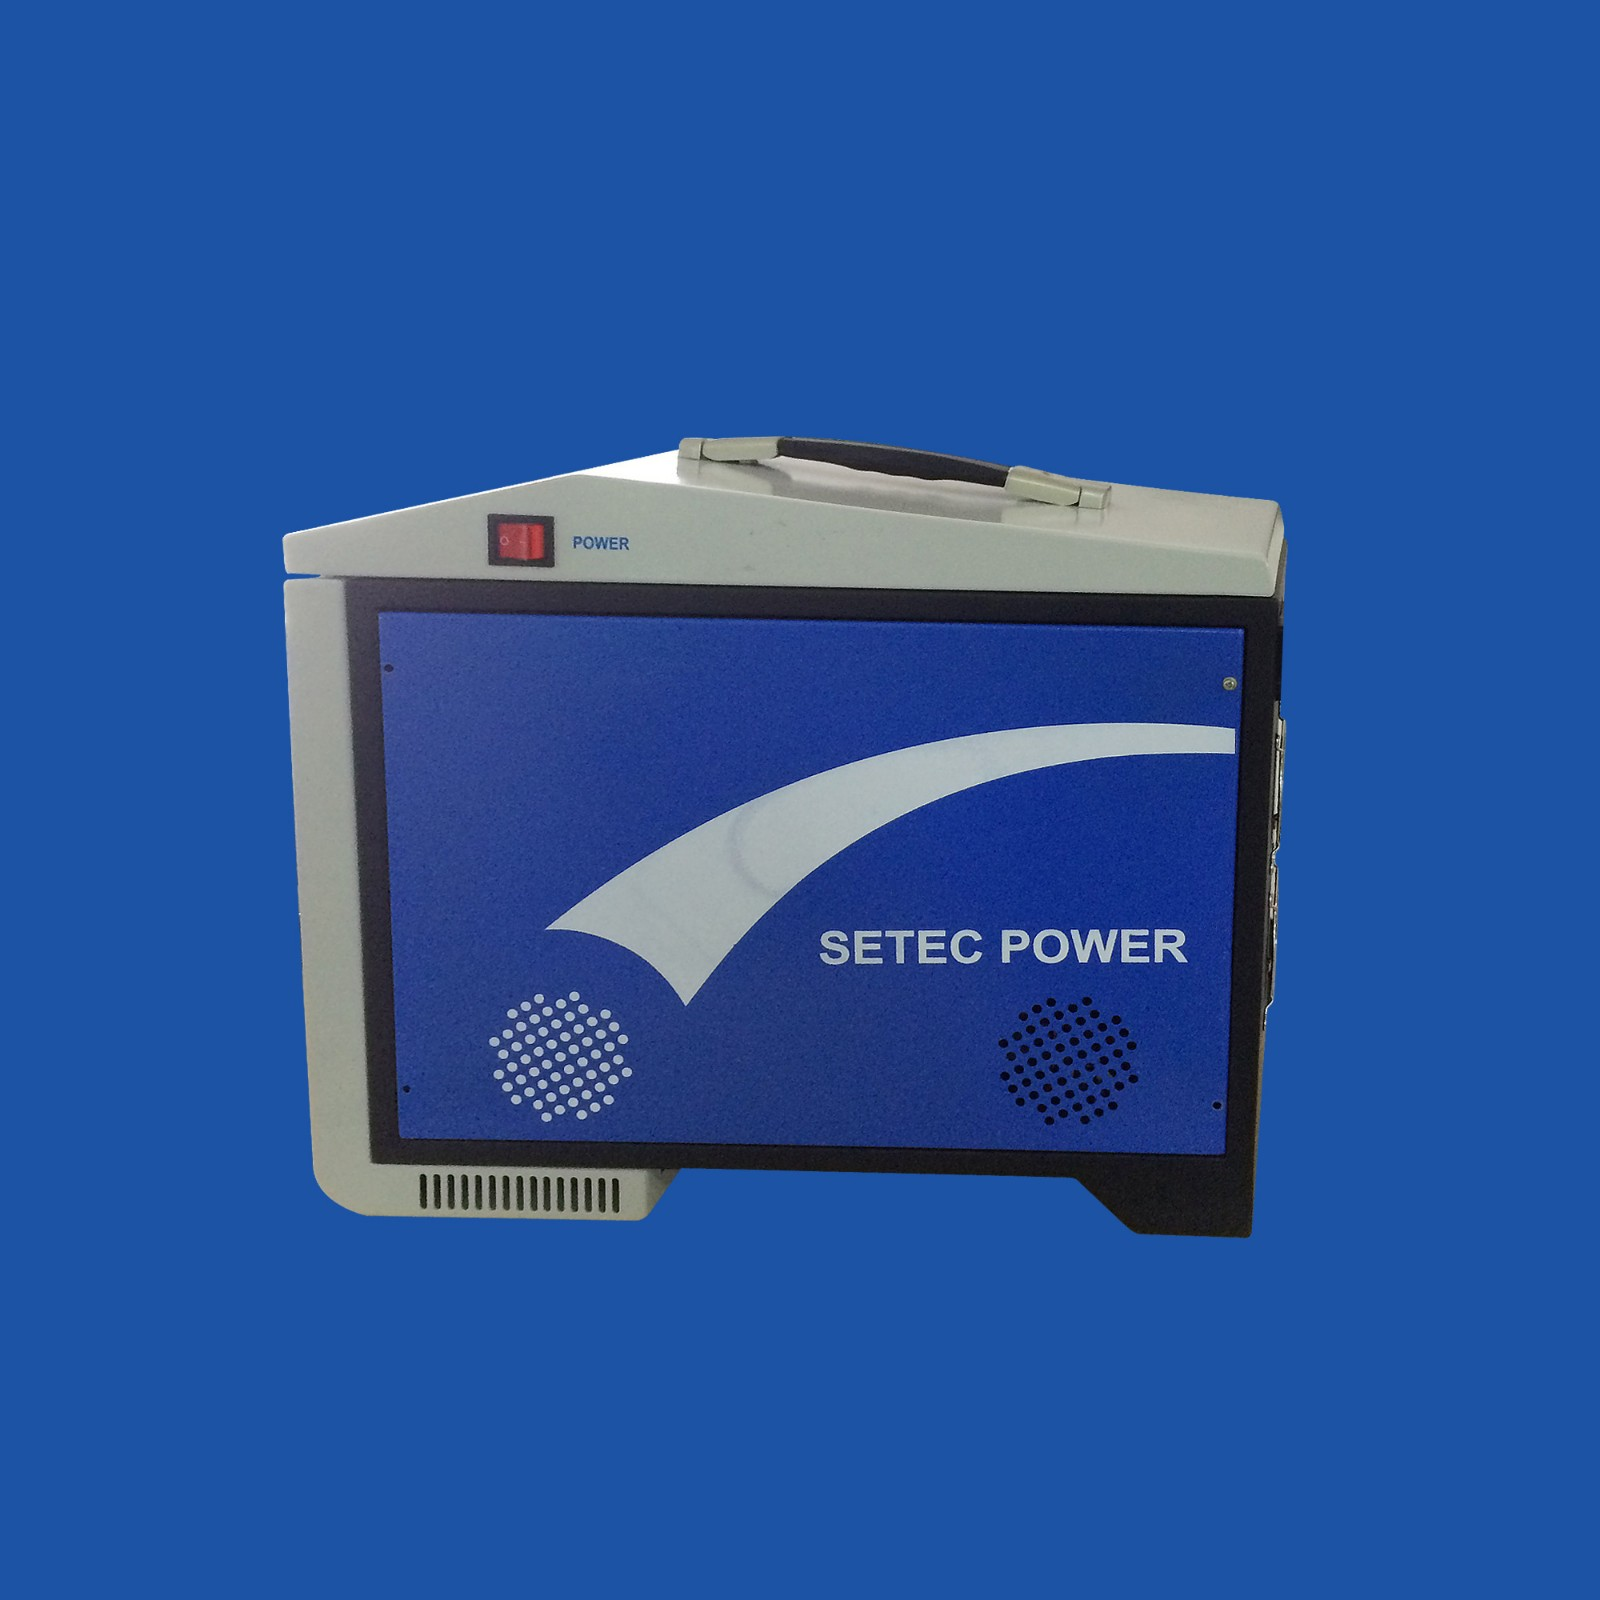 www.setec-power.com